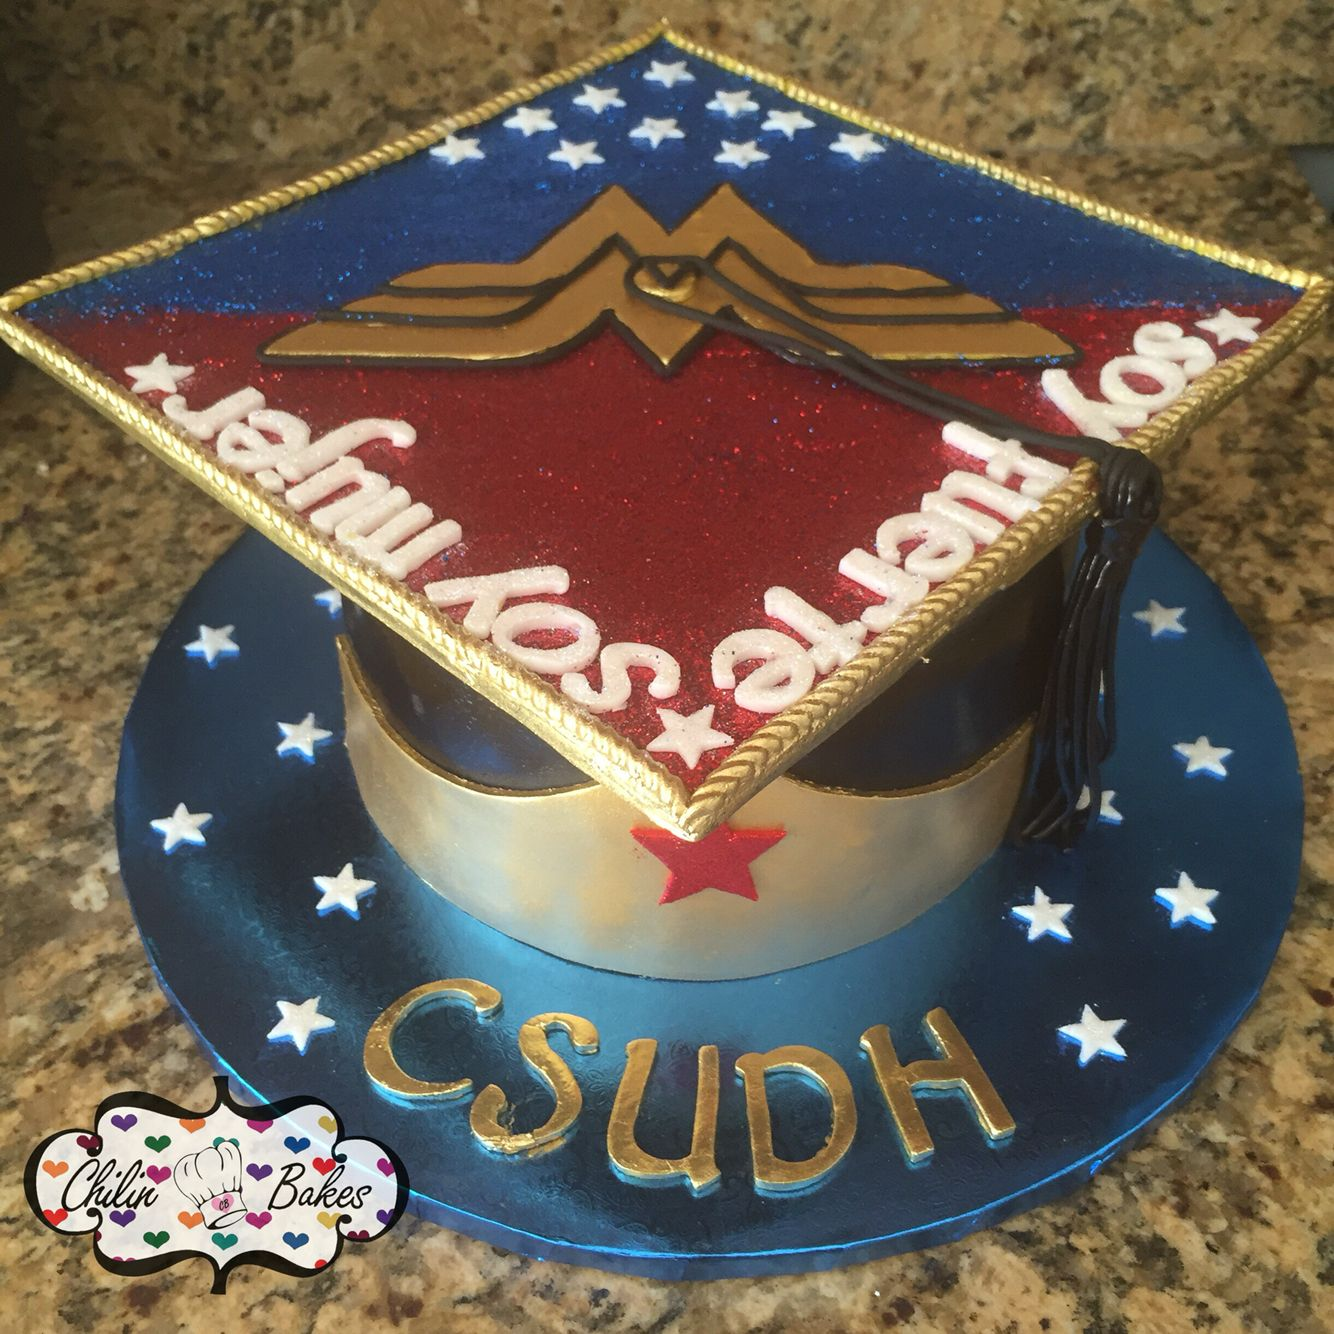 Wonder Woman Graduation Cap Cake  Chilin Bakes. Free Press Kit Template. Picture Of Graduated Cylinder. Free Magazine Template. Vistaprint Business Cards Template. Navy Graduation Live Stream. Free Cleaning Proposal Template. Job Ad Template. Corporate Meeting Minutes Template